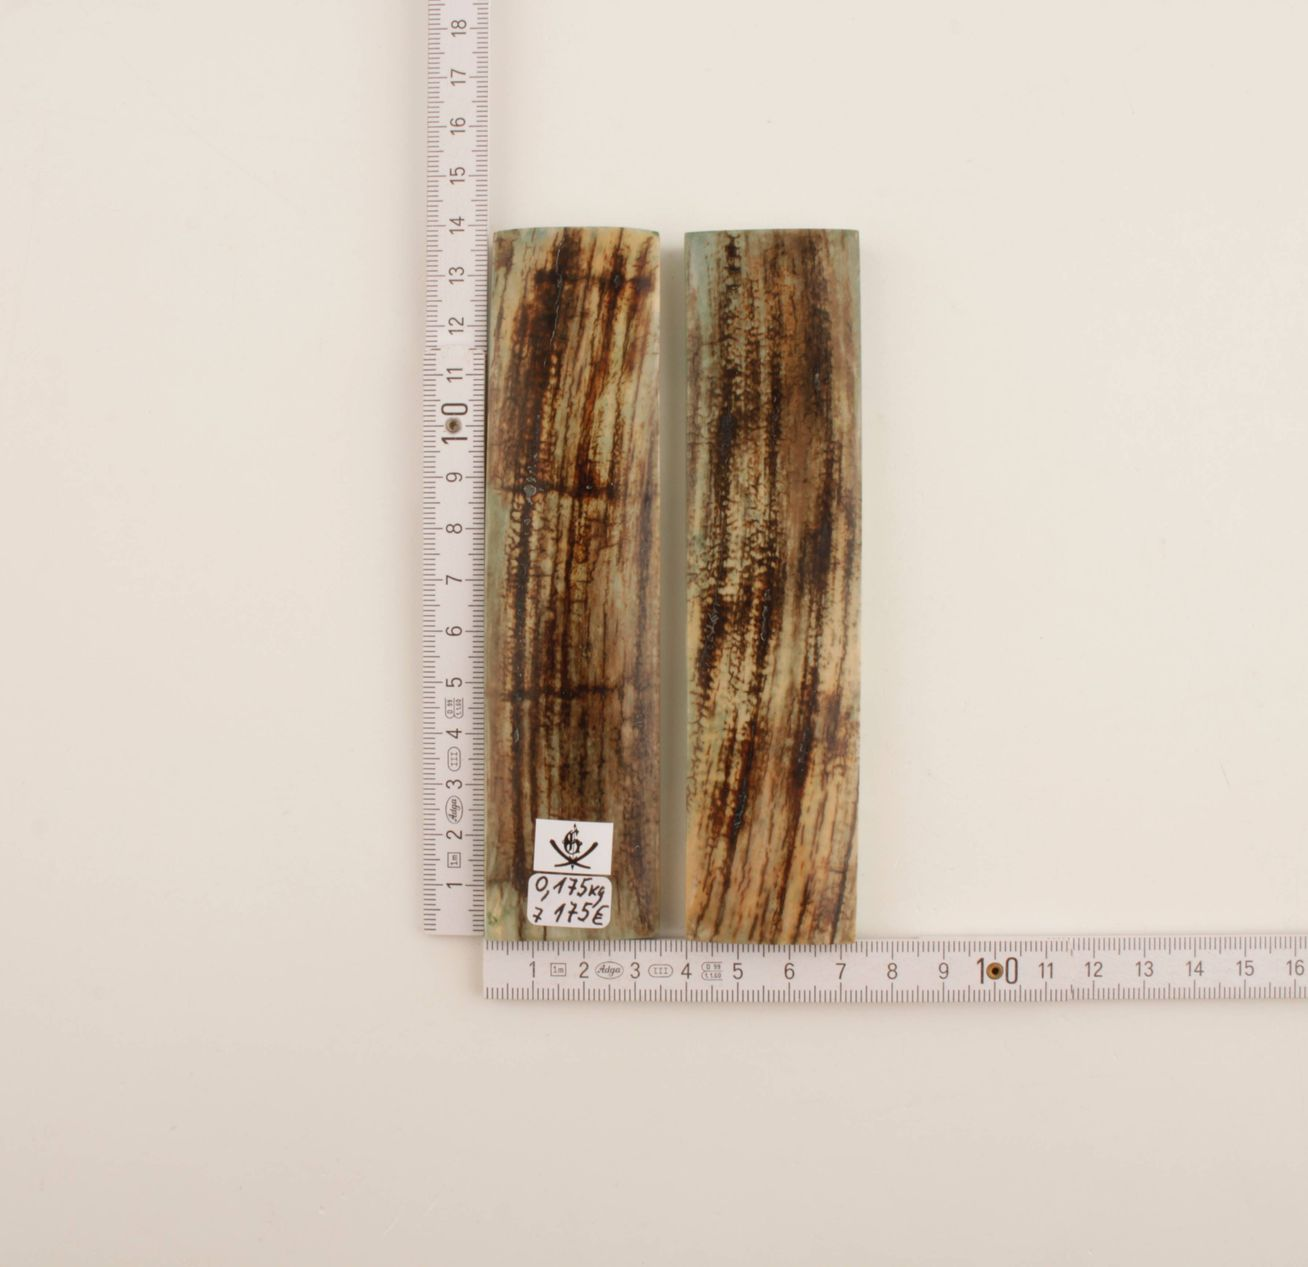 Stabilized mammoth bark scales